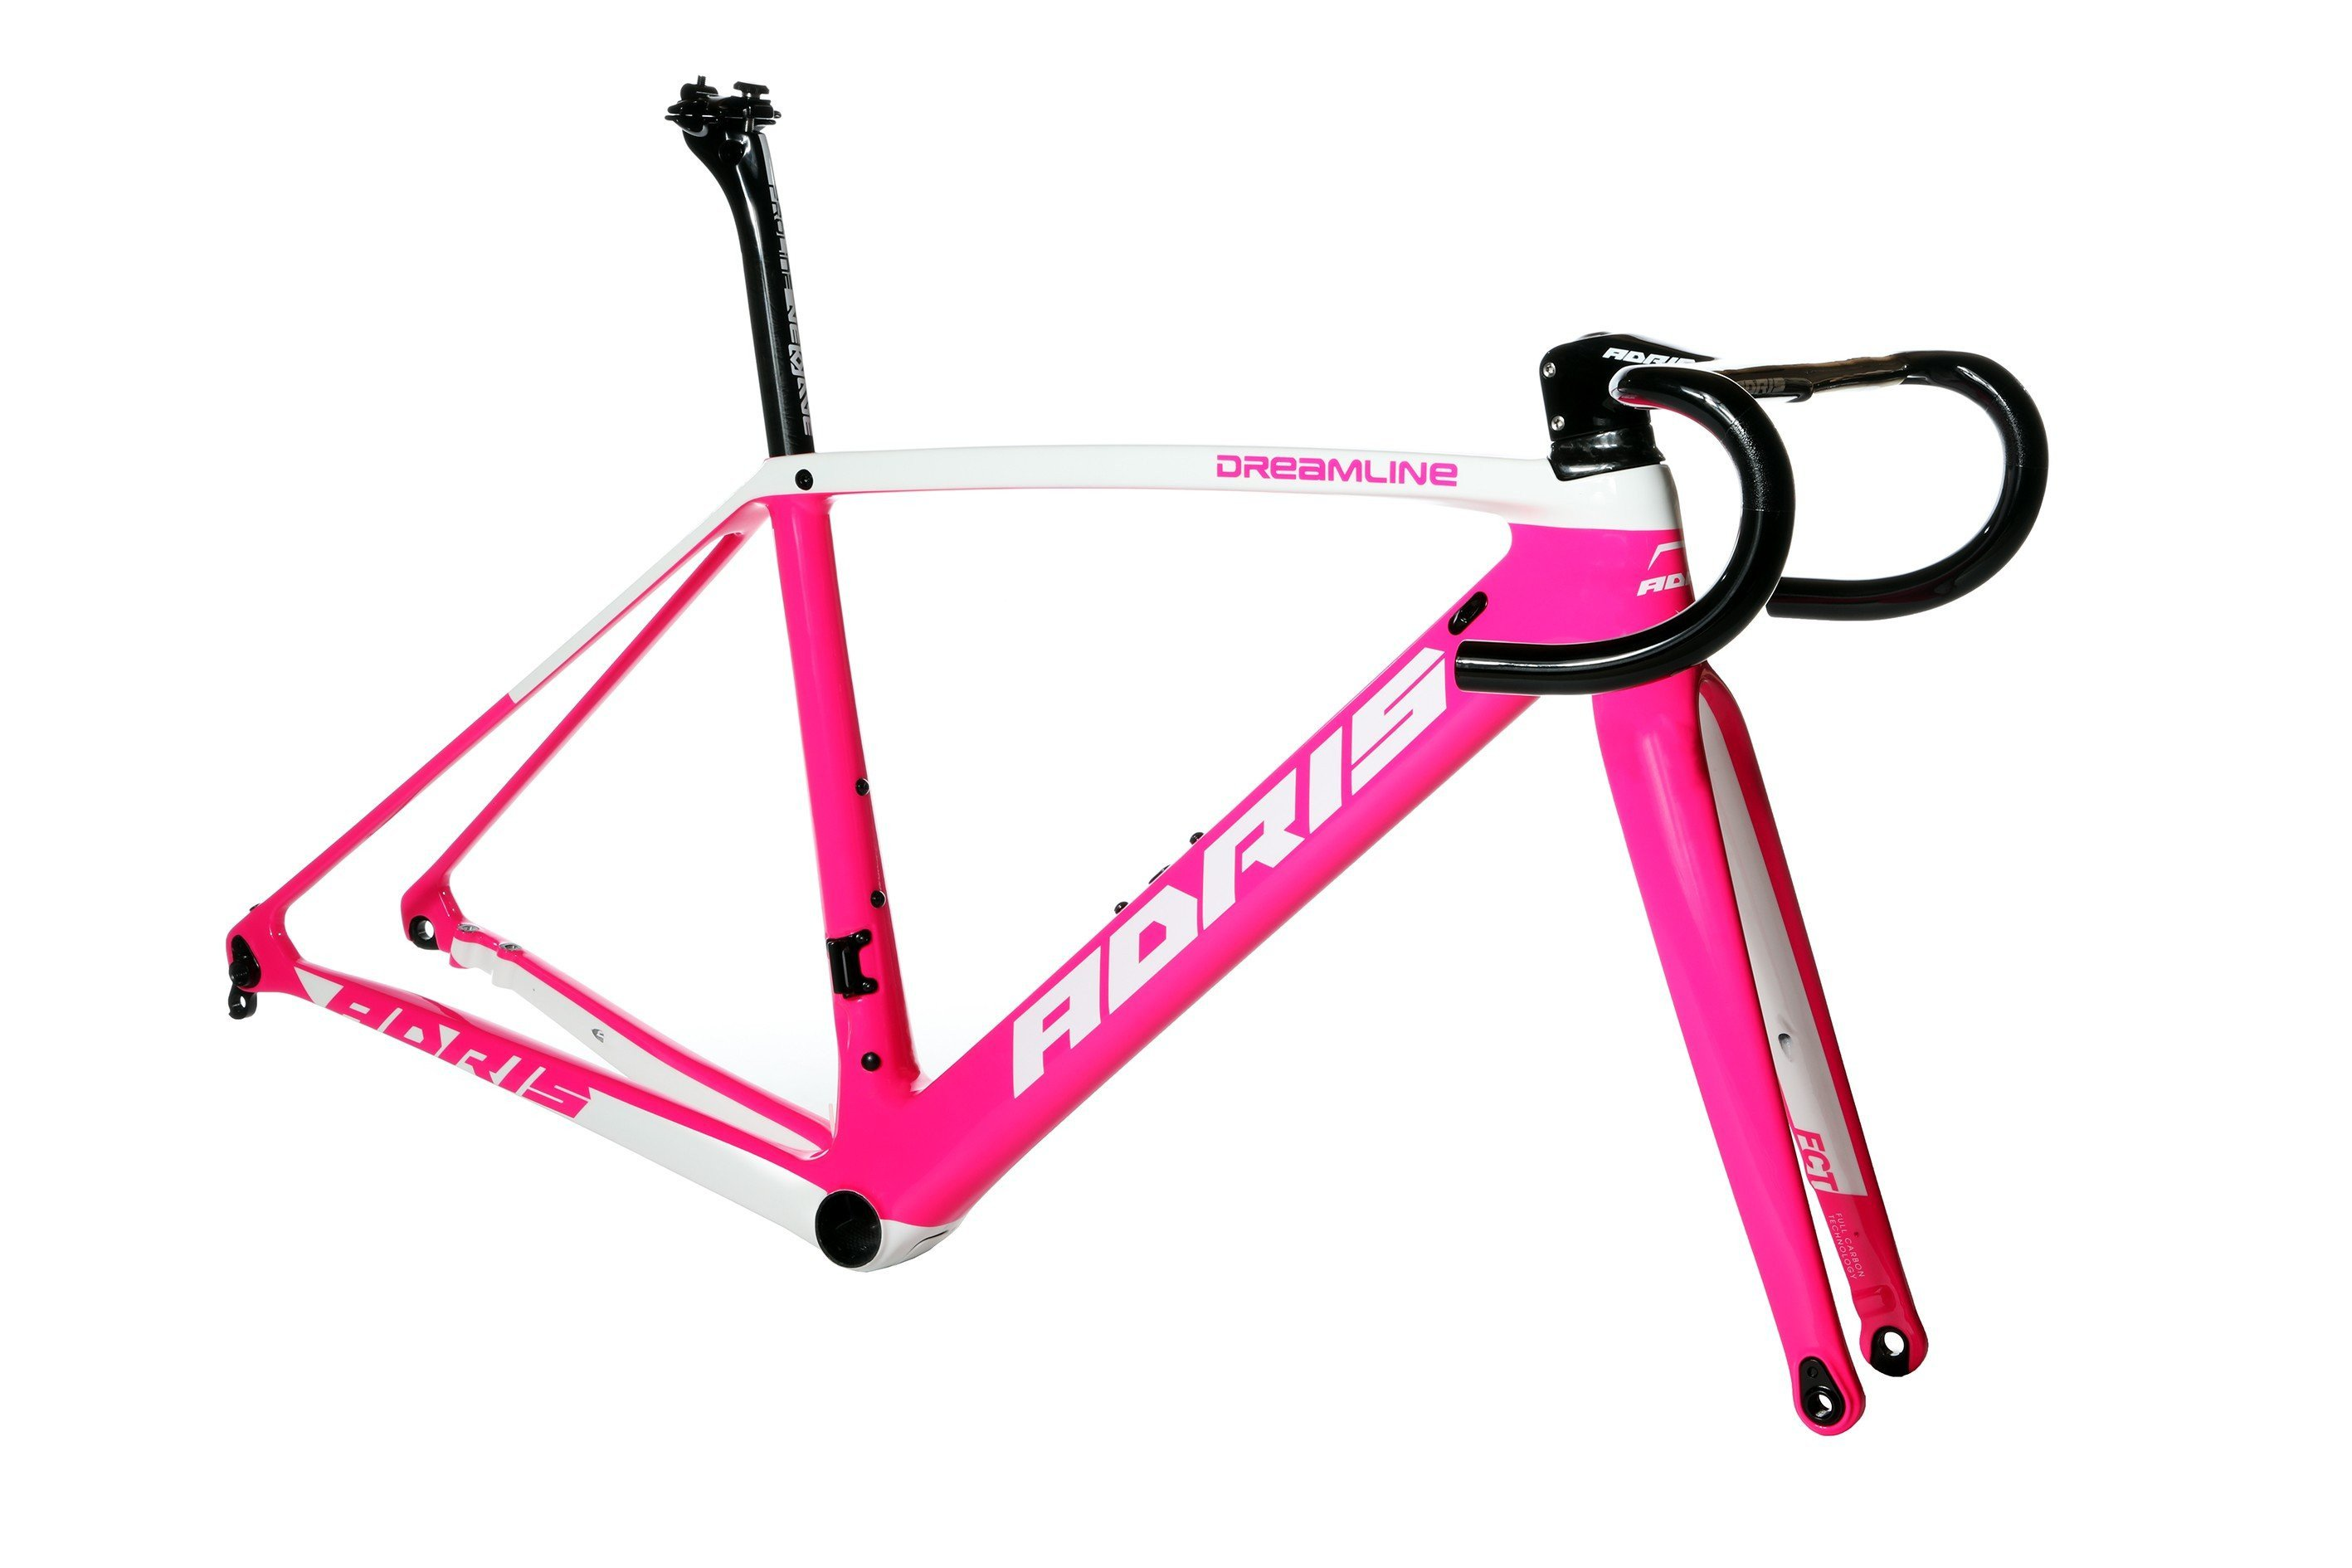 CADRE ADRIS DREAMLINE DISC PINK GLOSSY